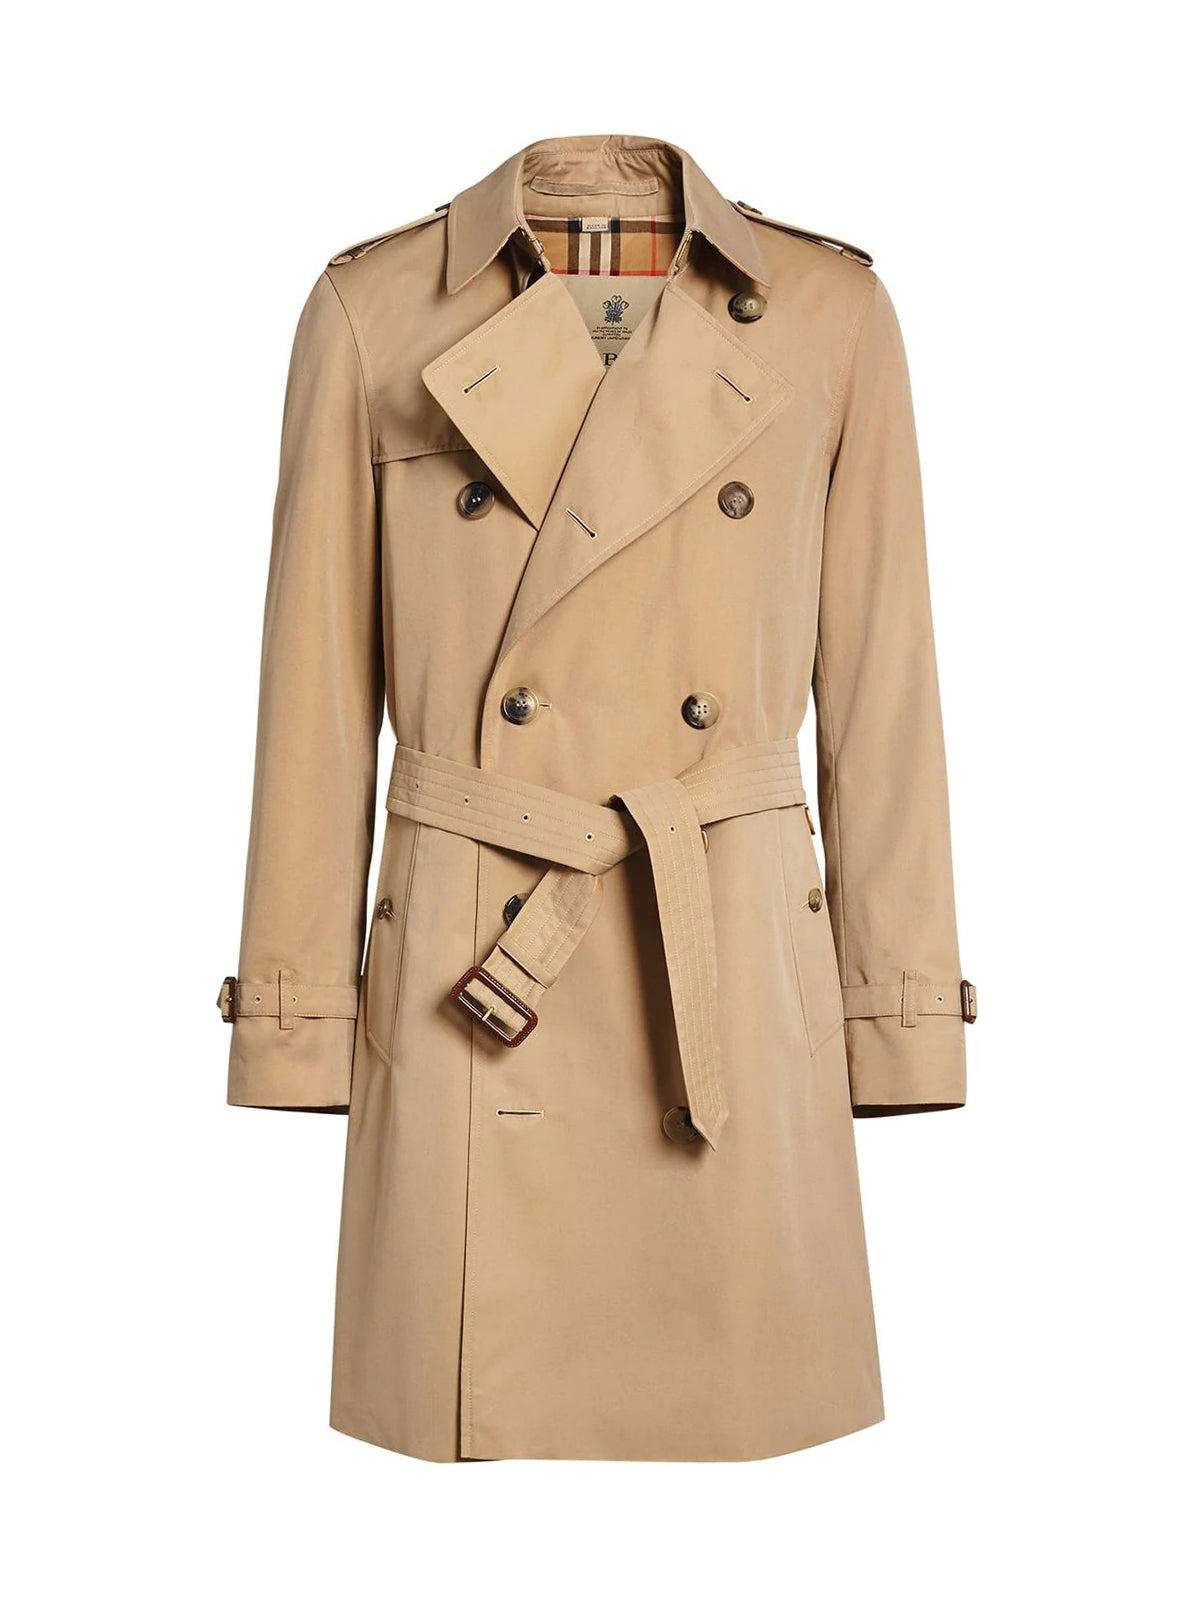 The Chelsea Heritage Trench Coat